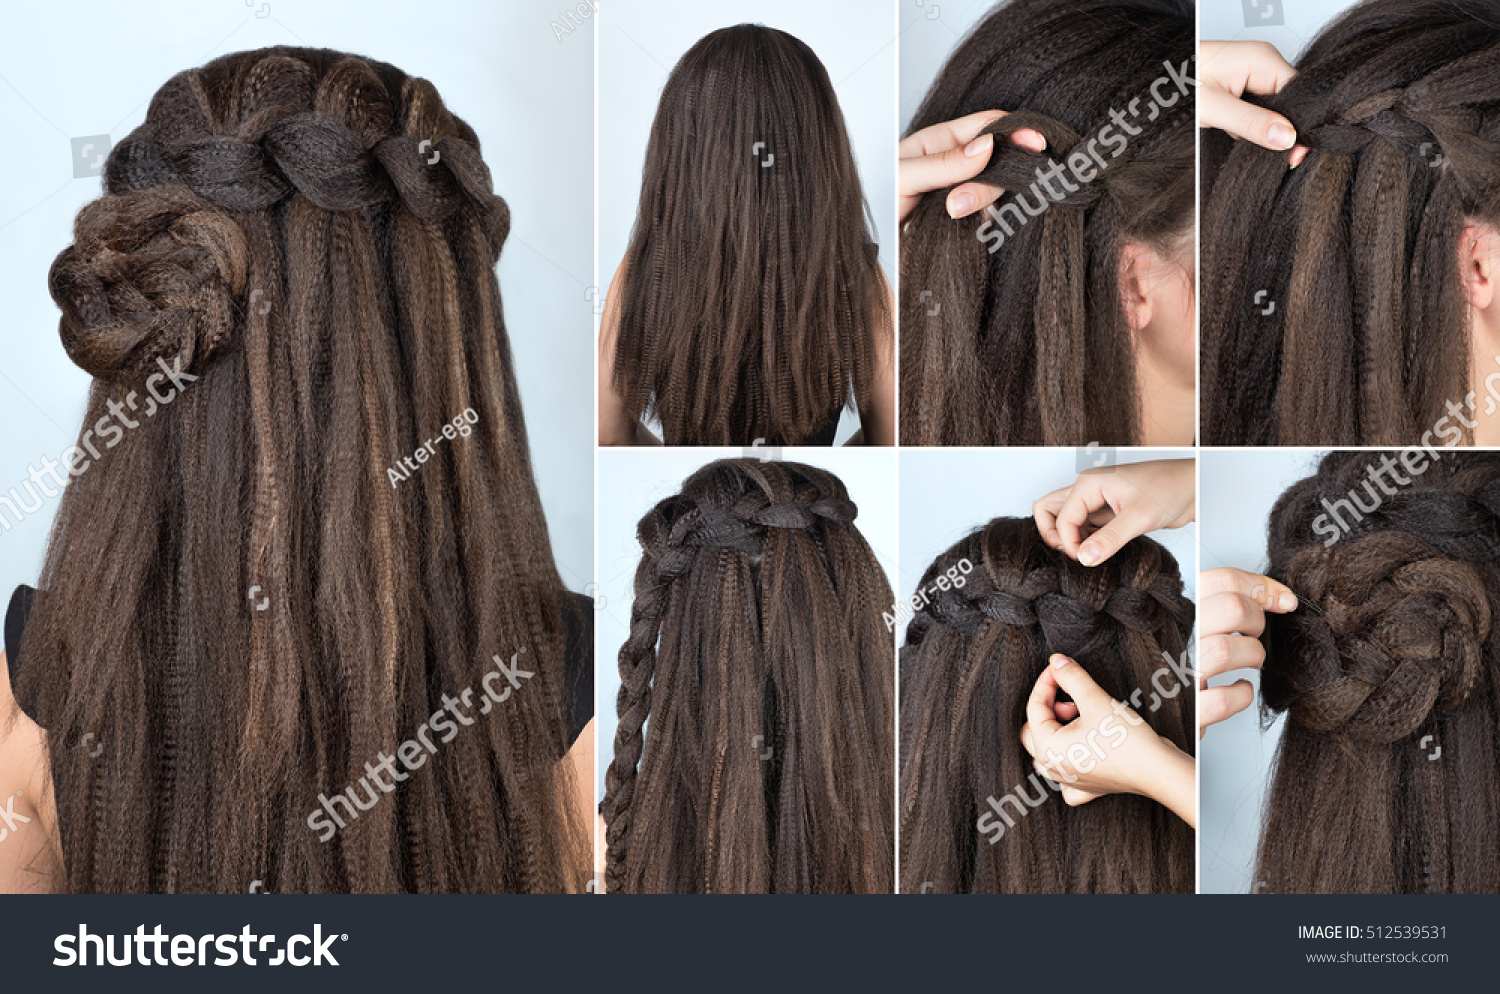 Hairstyle Braided Rose Tutorial Step By Stock Photo 512539531